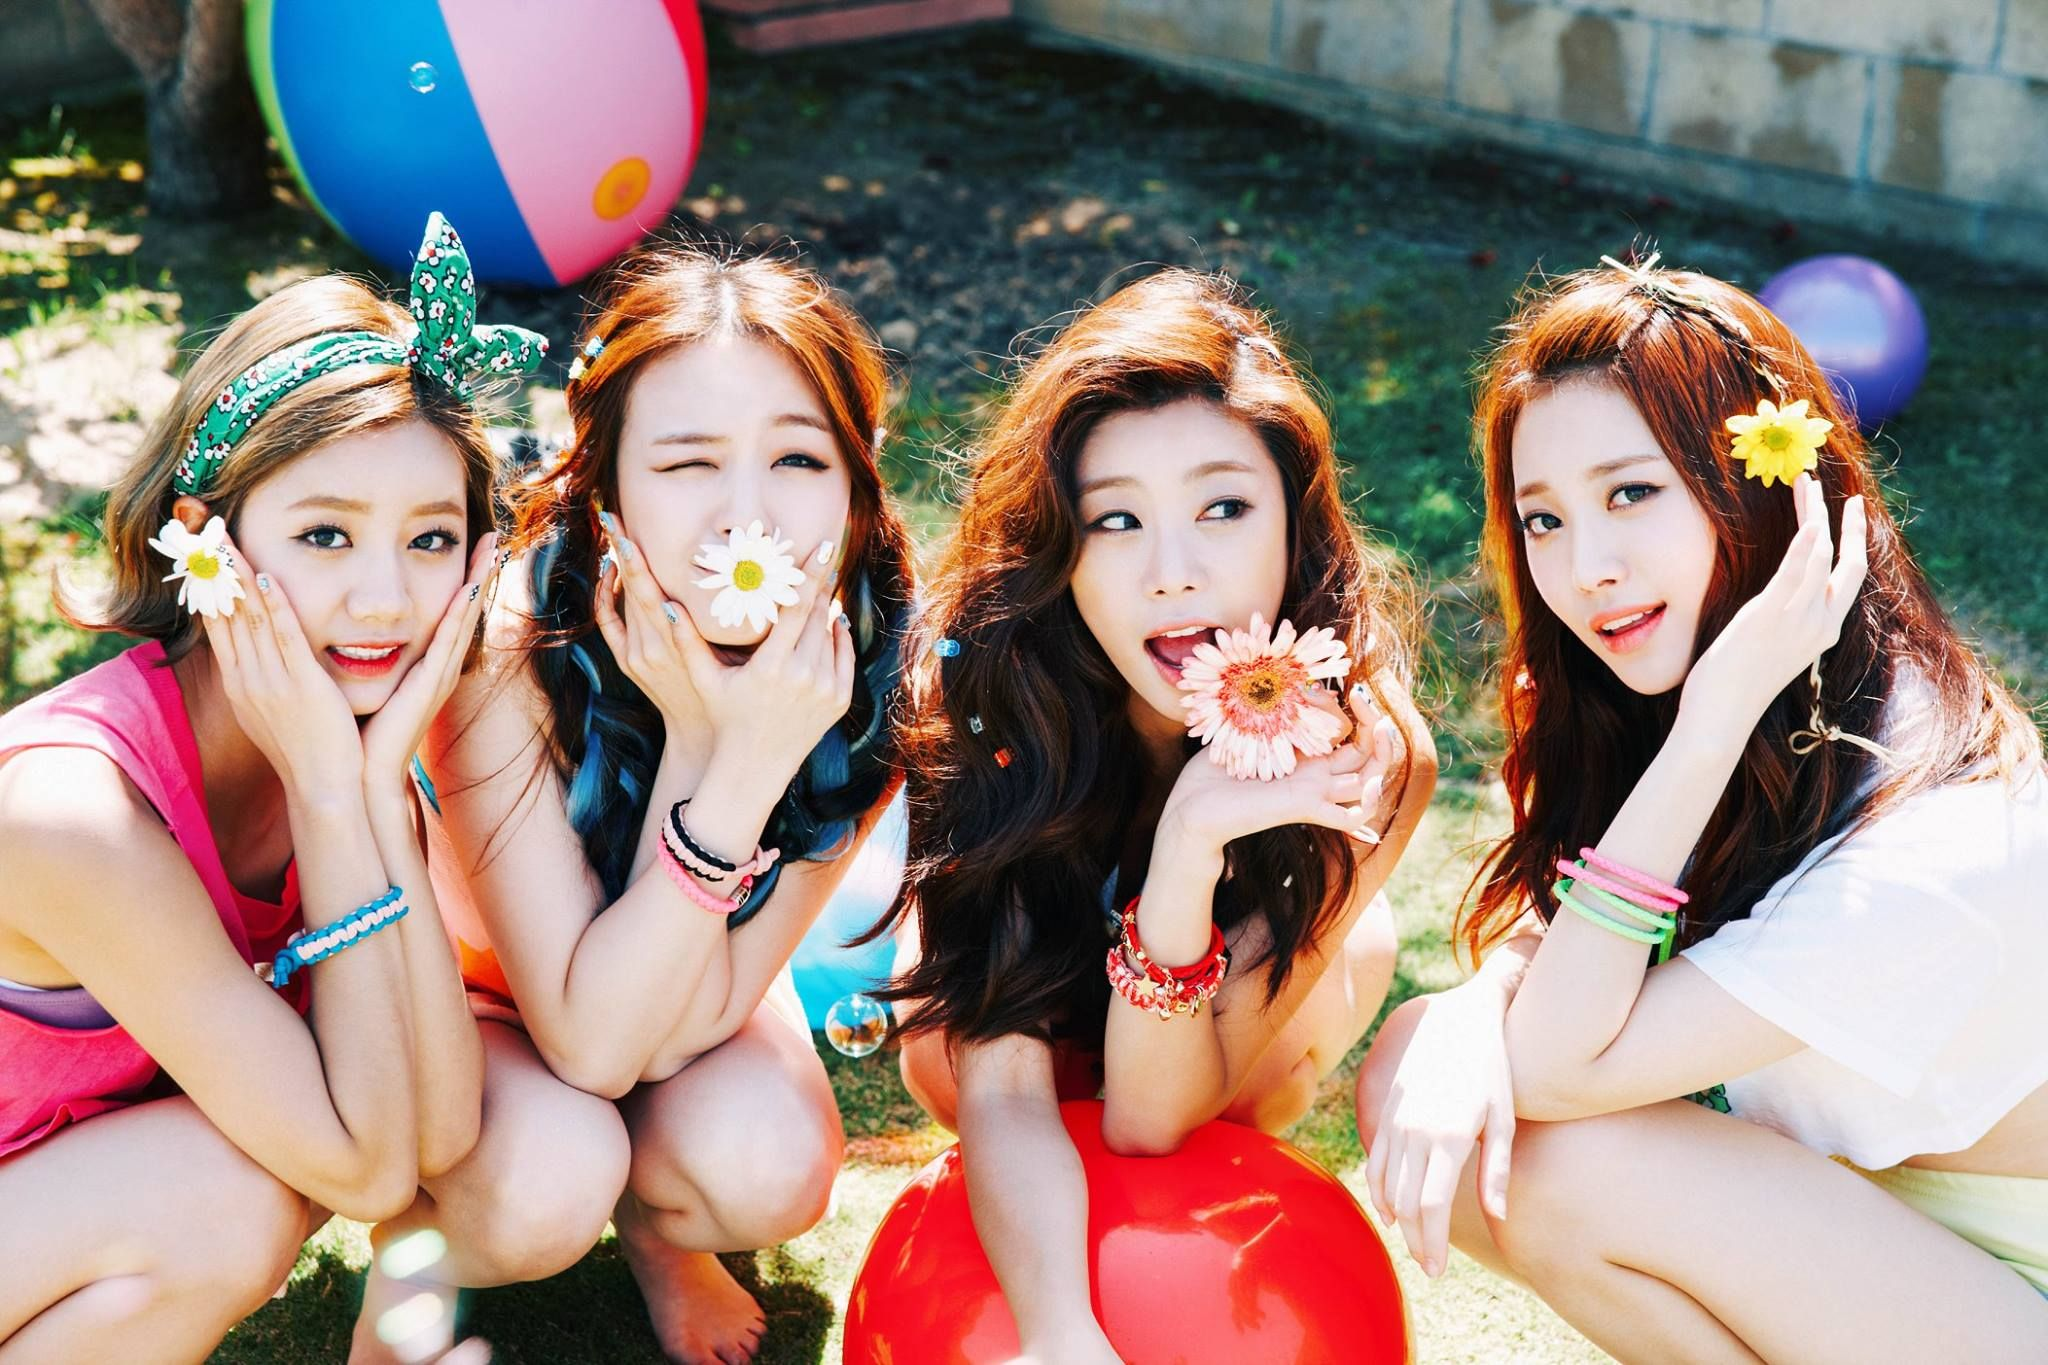 Sojin Girl S Day S Members Kiss Each Other A Lot Girls Day Members Girl Day Kpop Girls